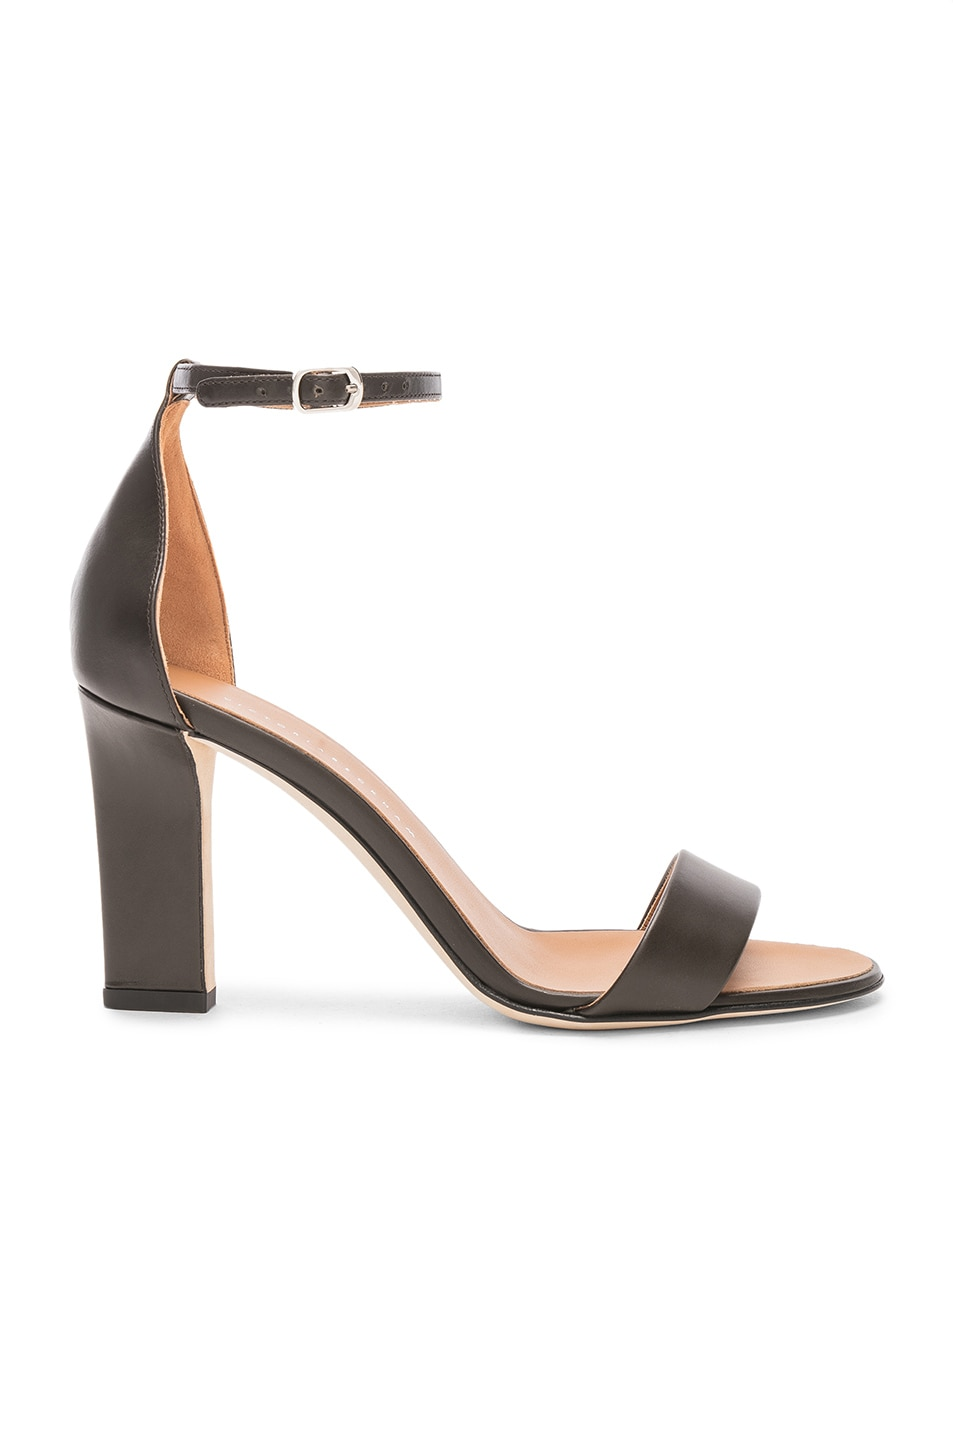 Image 1 of Victoria Beckham Leather Anna Ankle Strap Sandals in Khaki